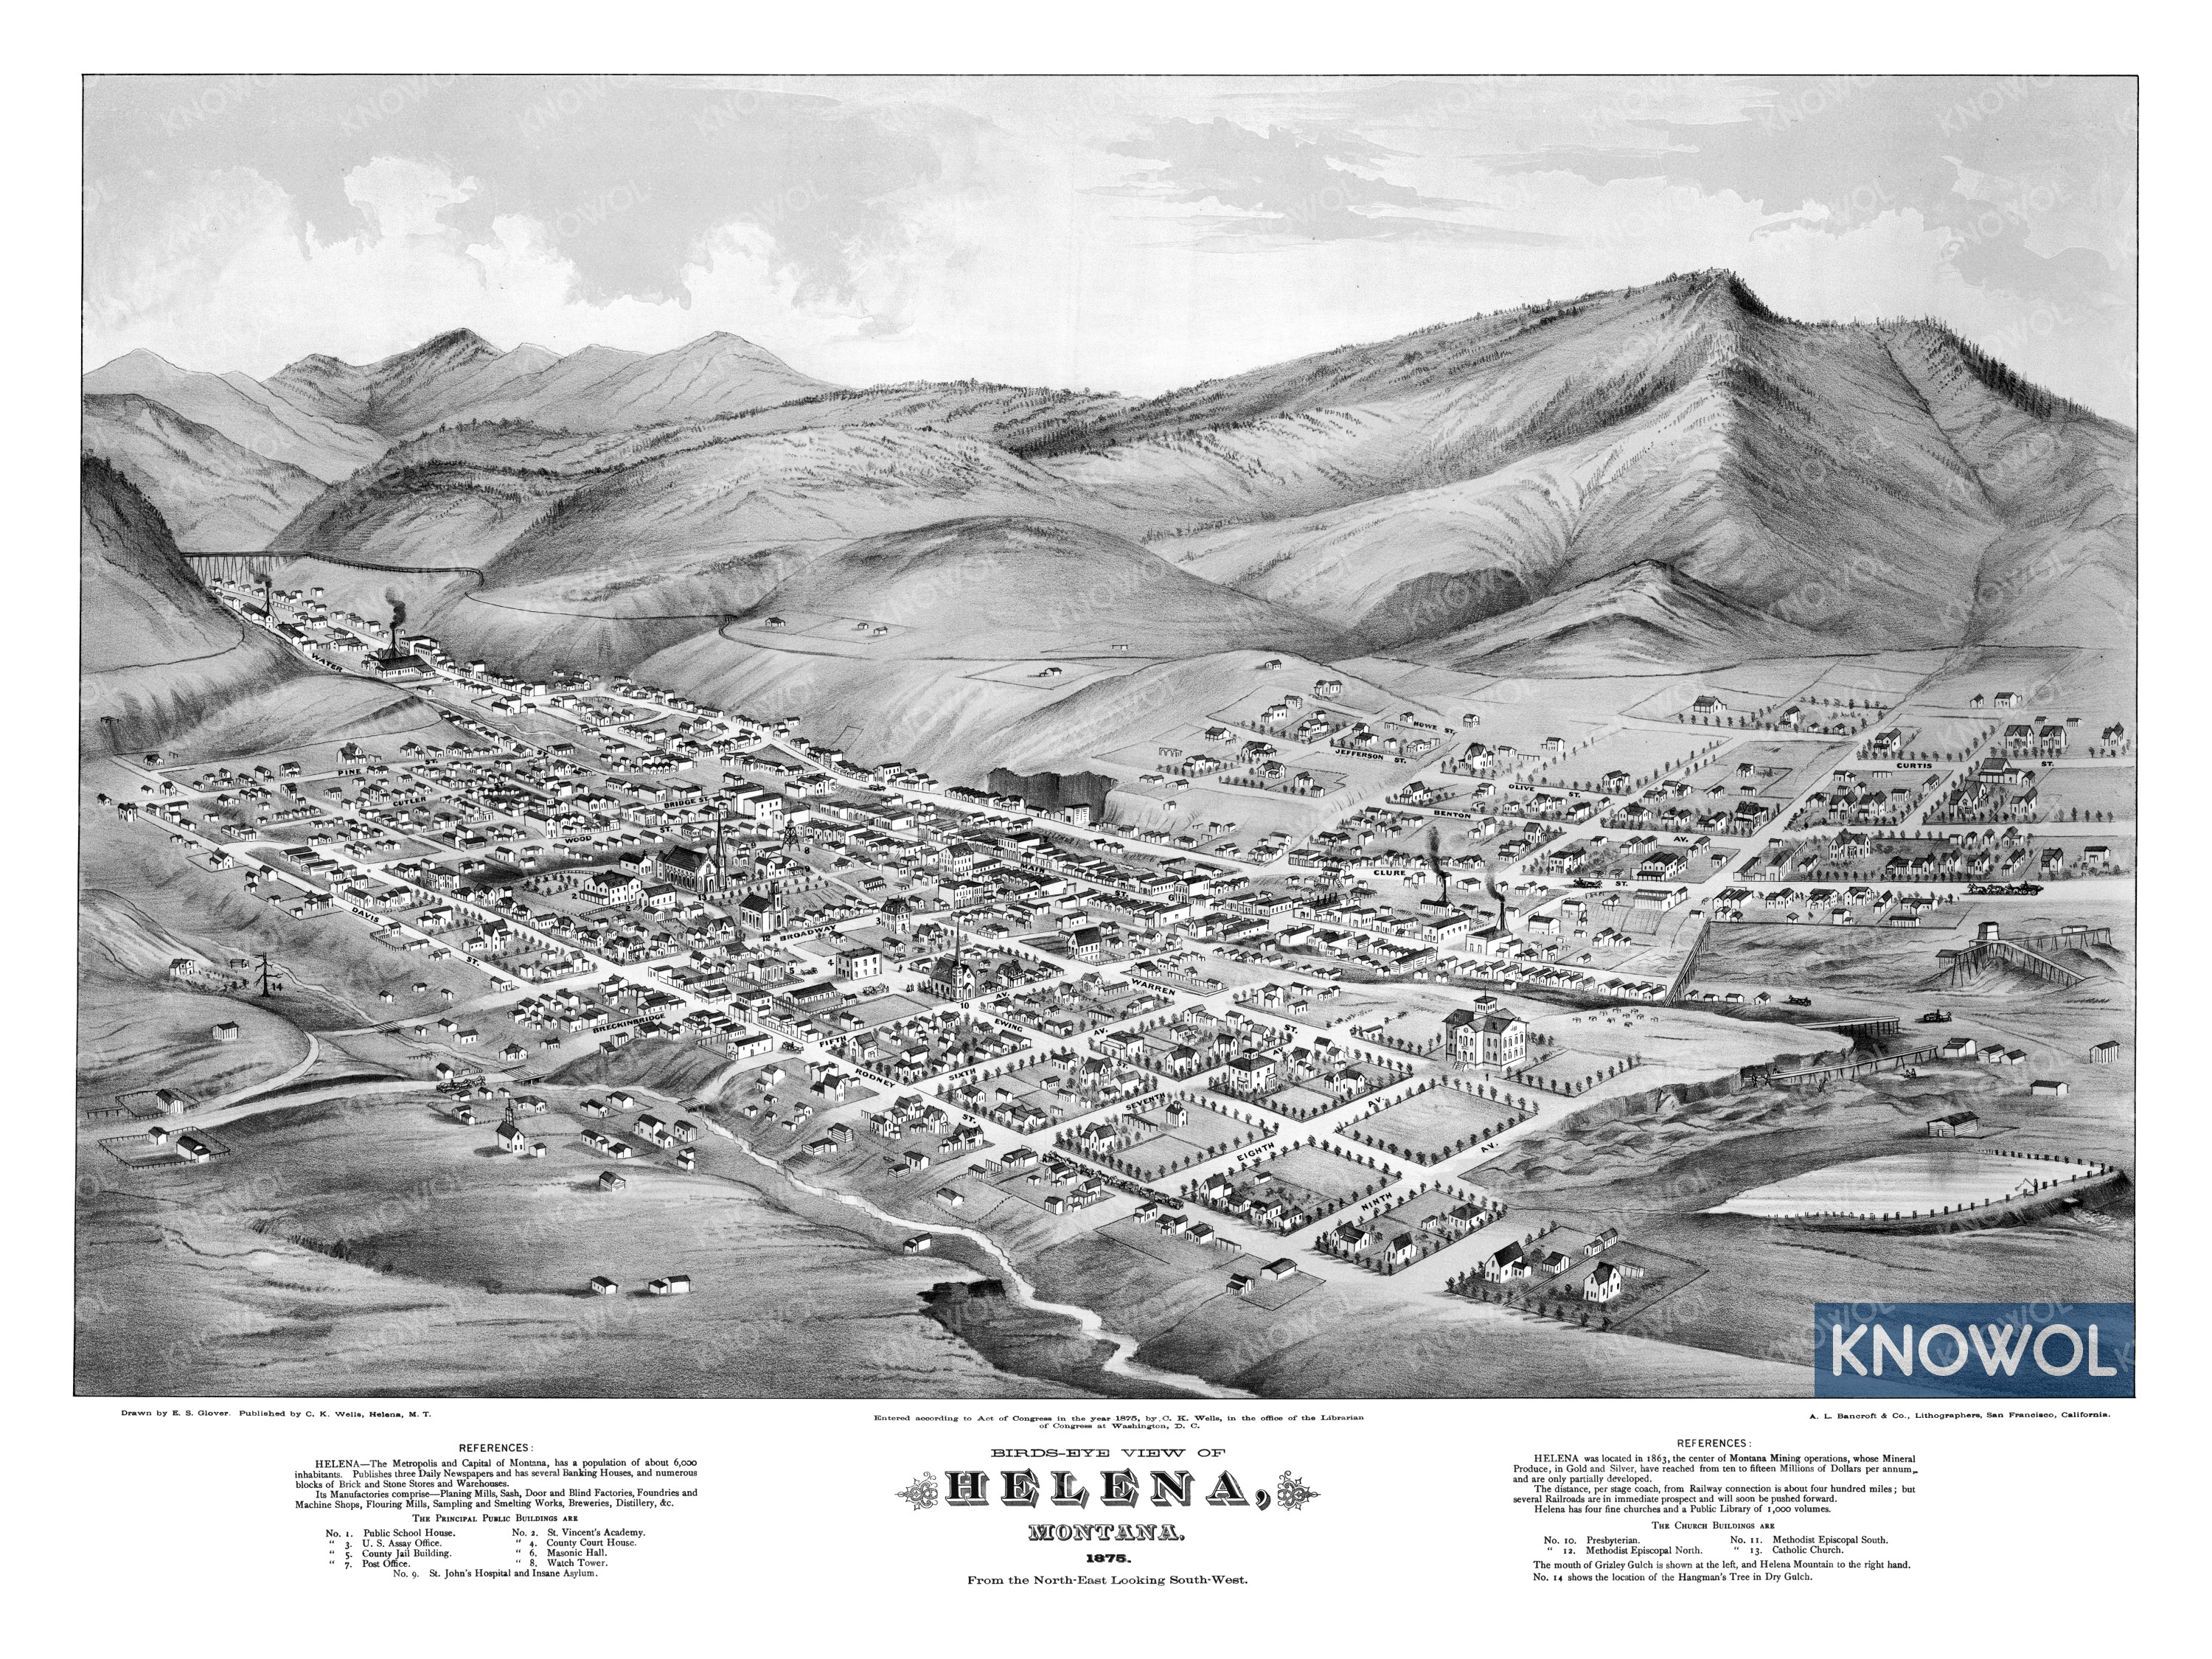 Beautifully detailed map of Helena, Montana from 1875 - KNOWOL